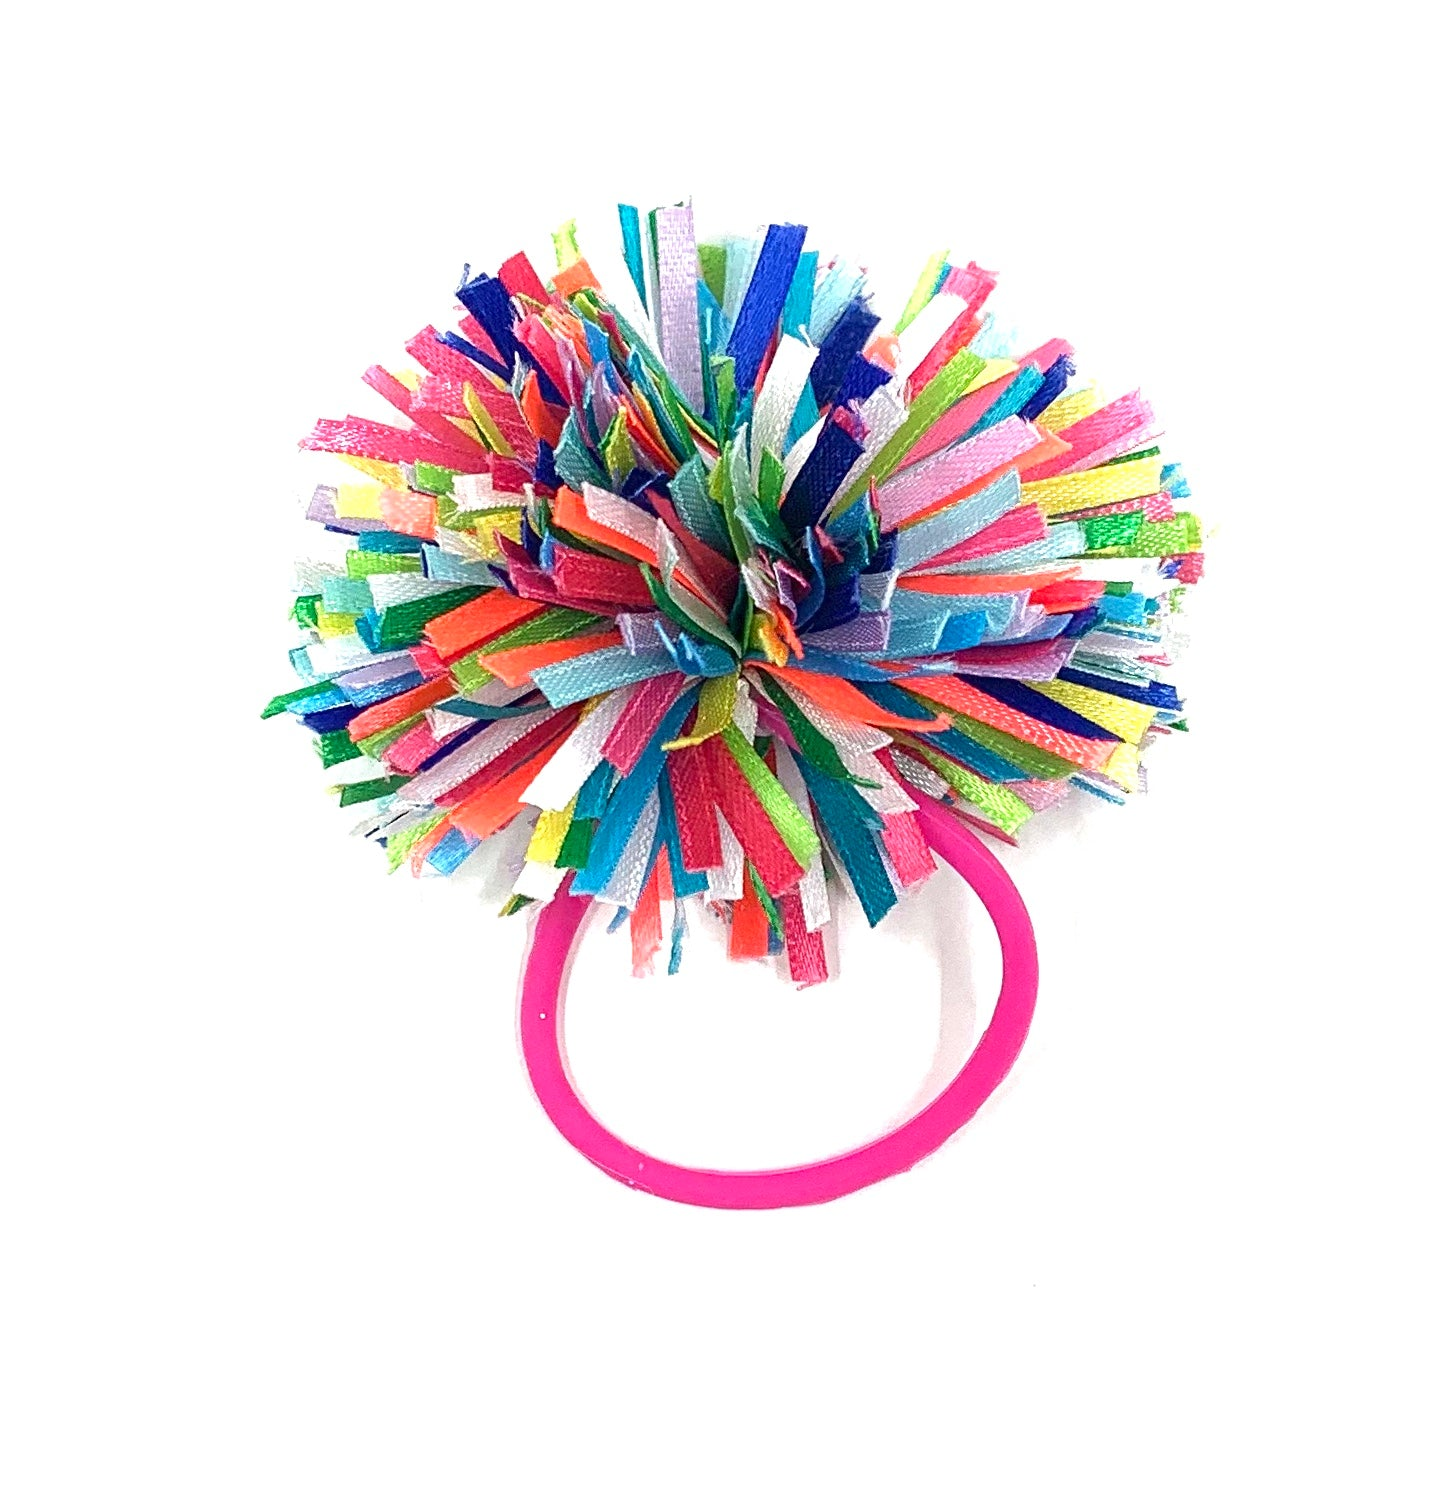 Waterproof Happy Happy Hair Tie